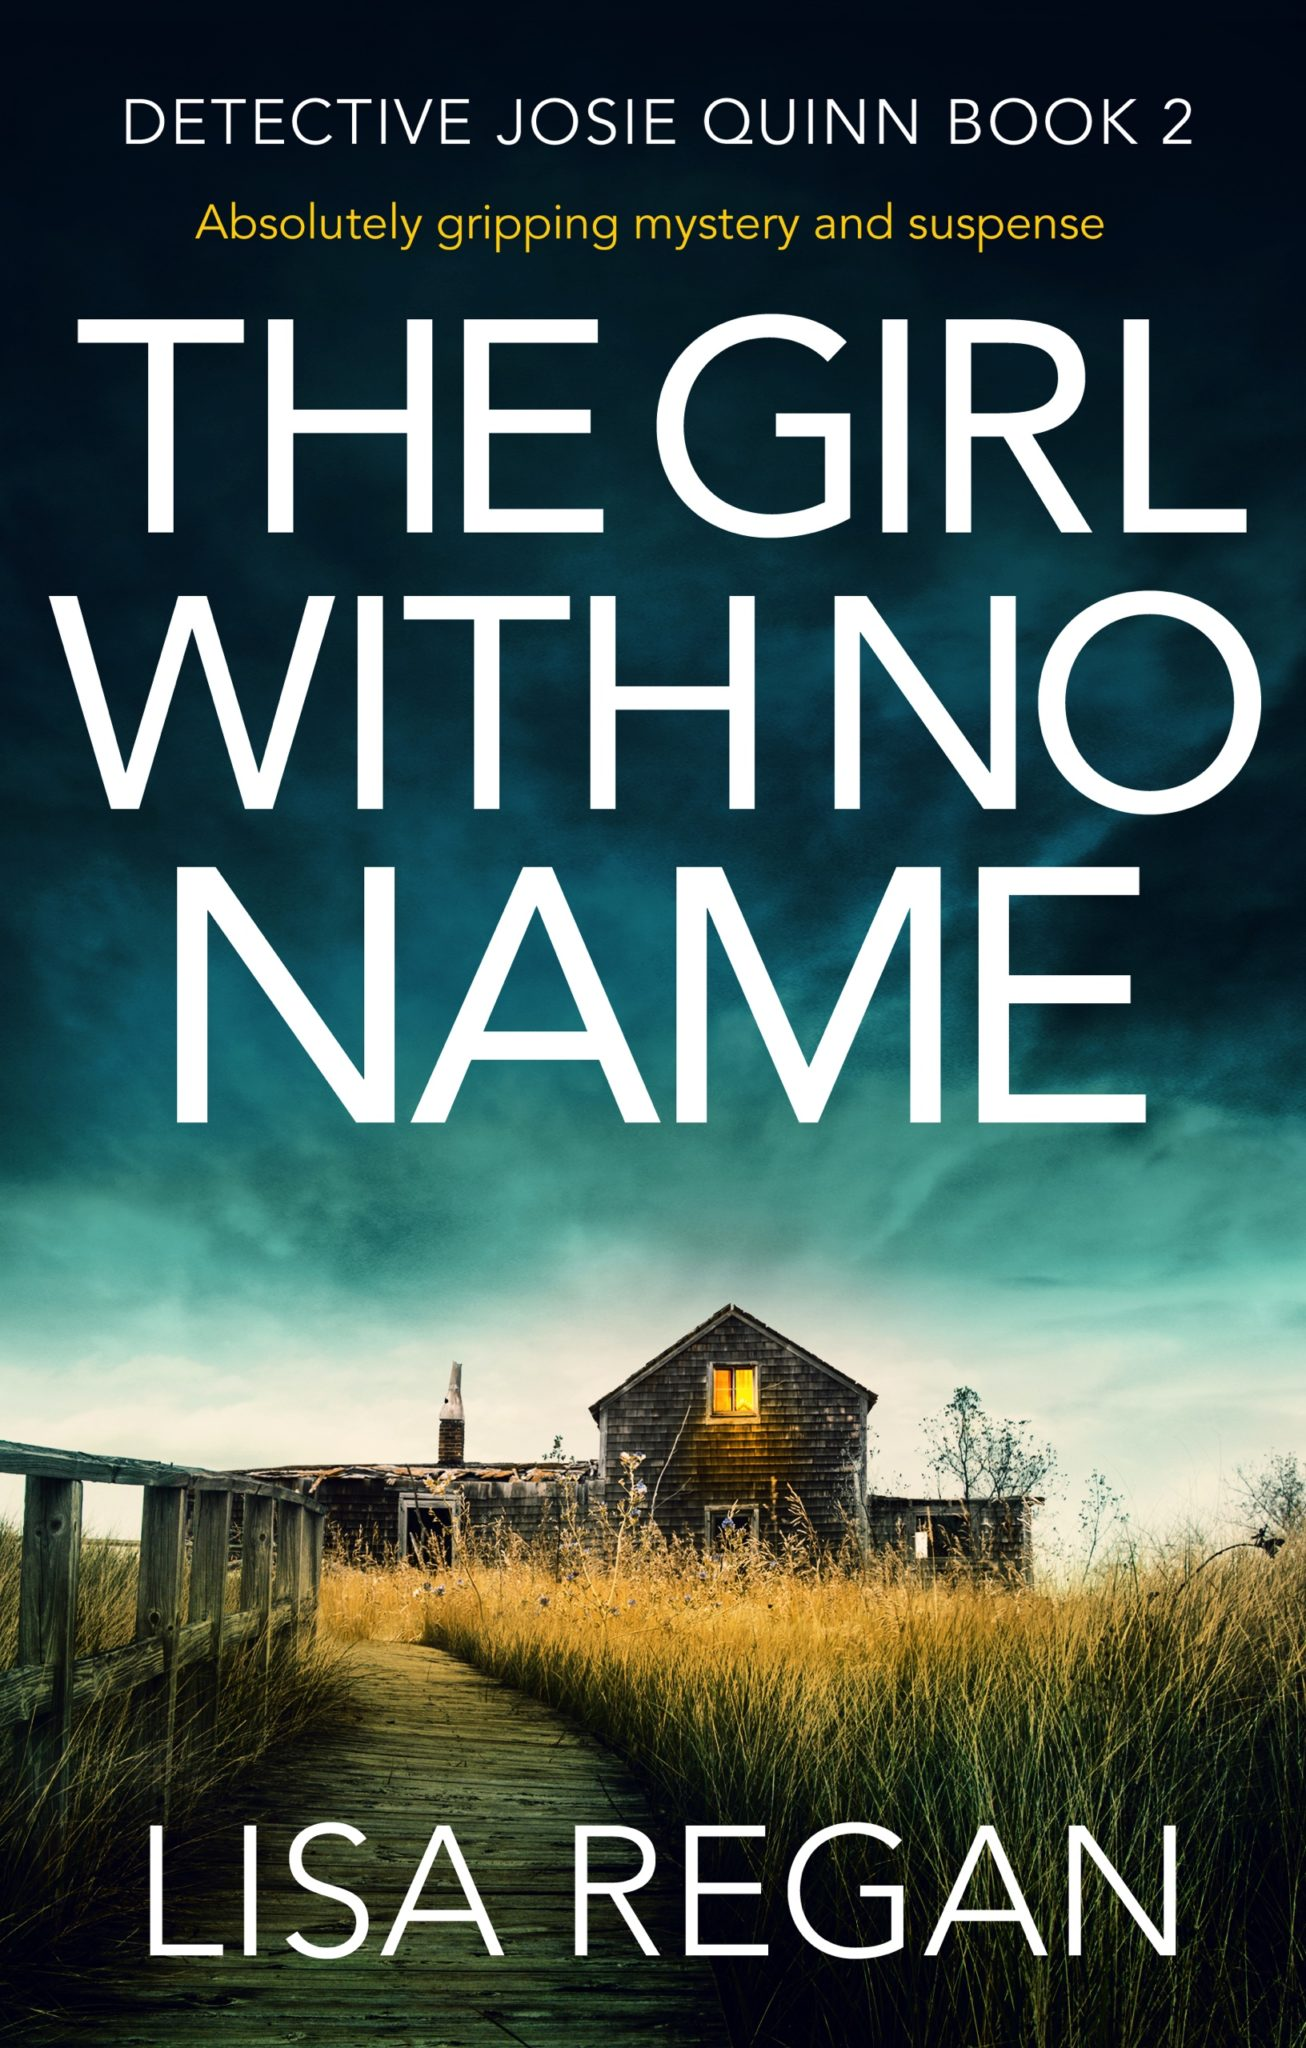 The Girl With No Name by Lisa Regan